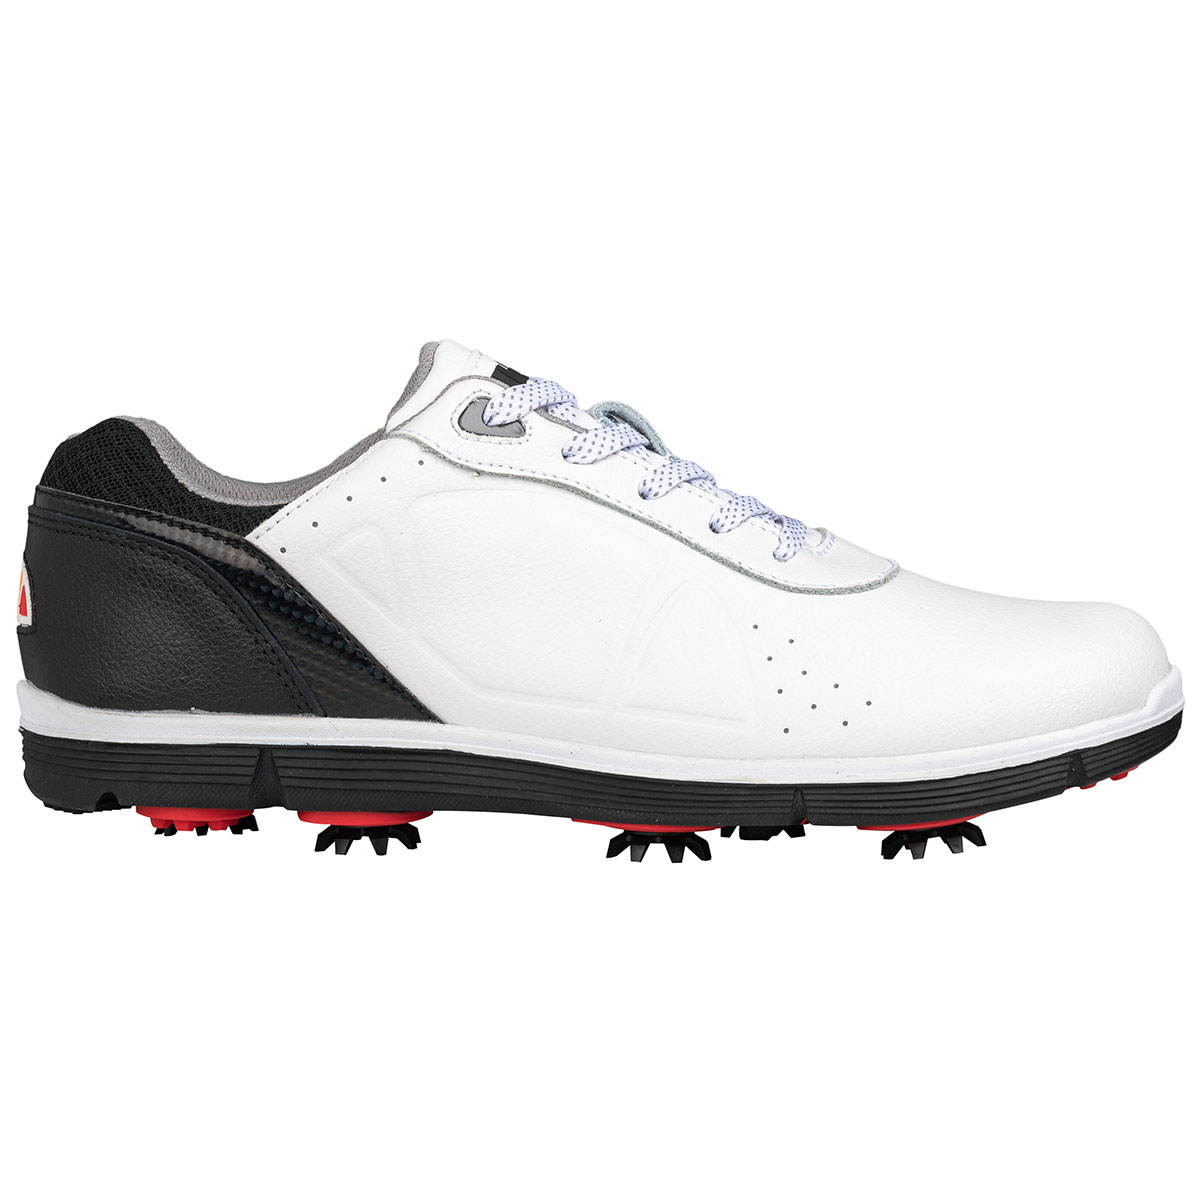 golf spiked shoes